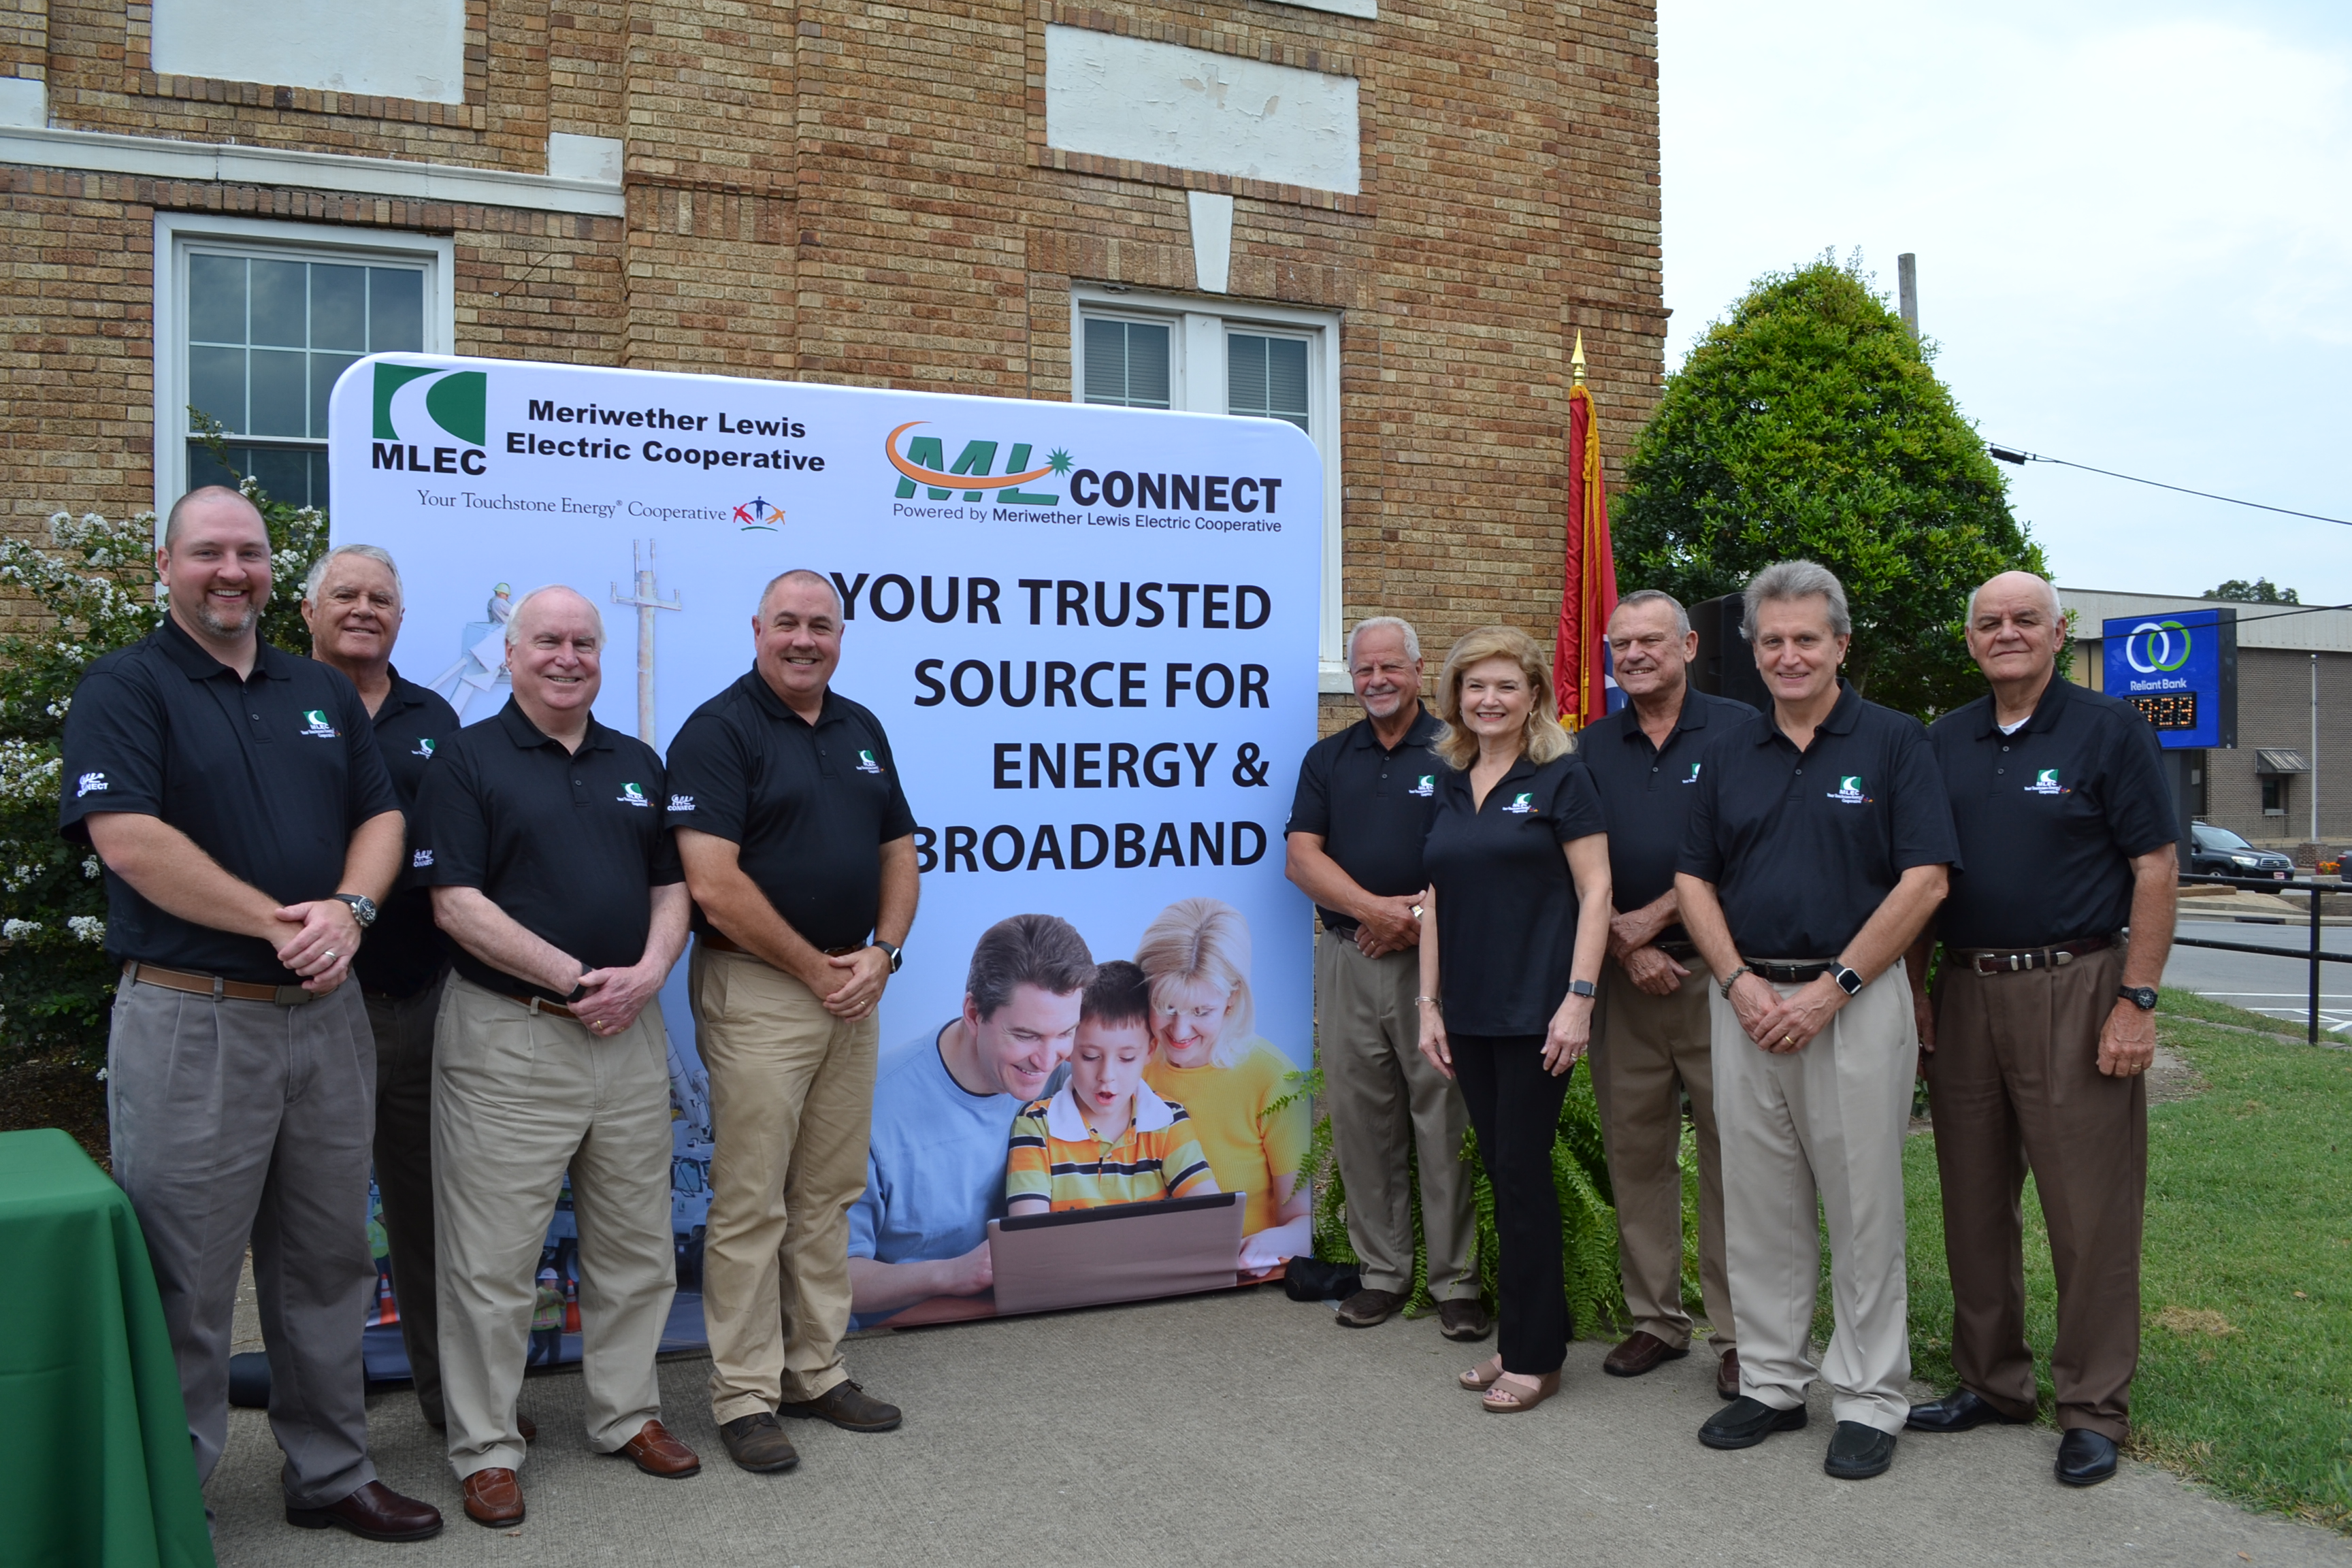 Meriwether Lewis Electric Cooperative officials with Your Trusted Source For Energy and Broadband back-drop.